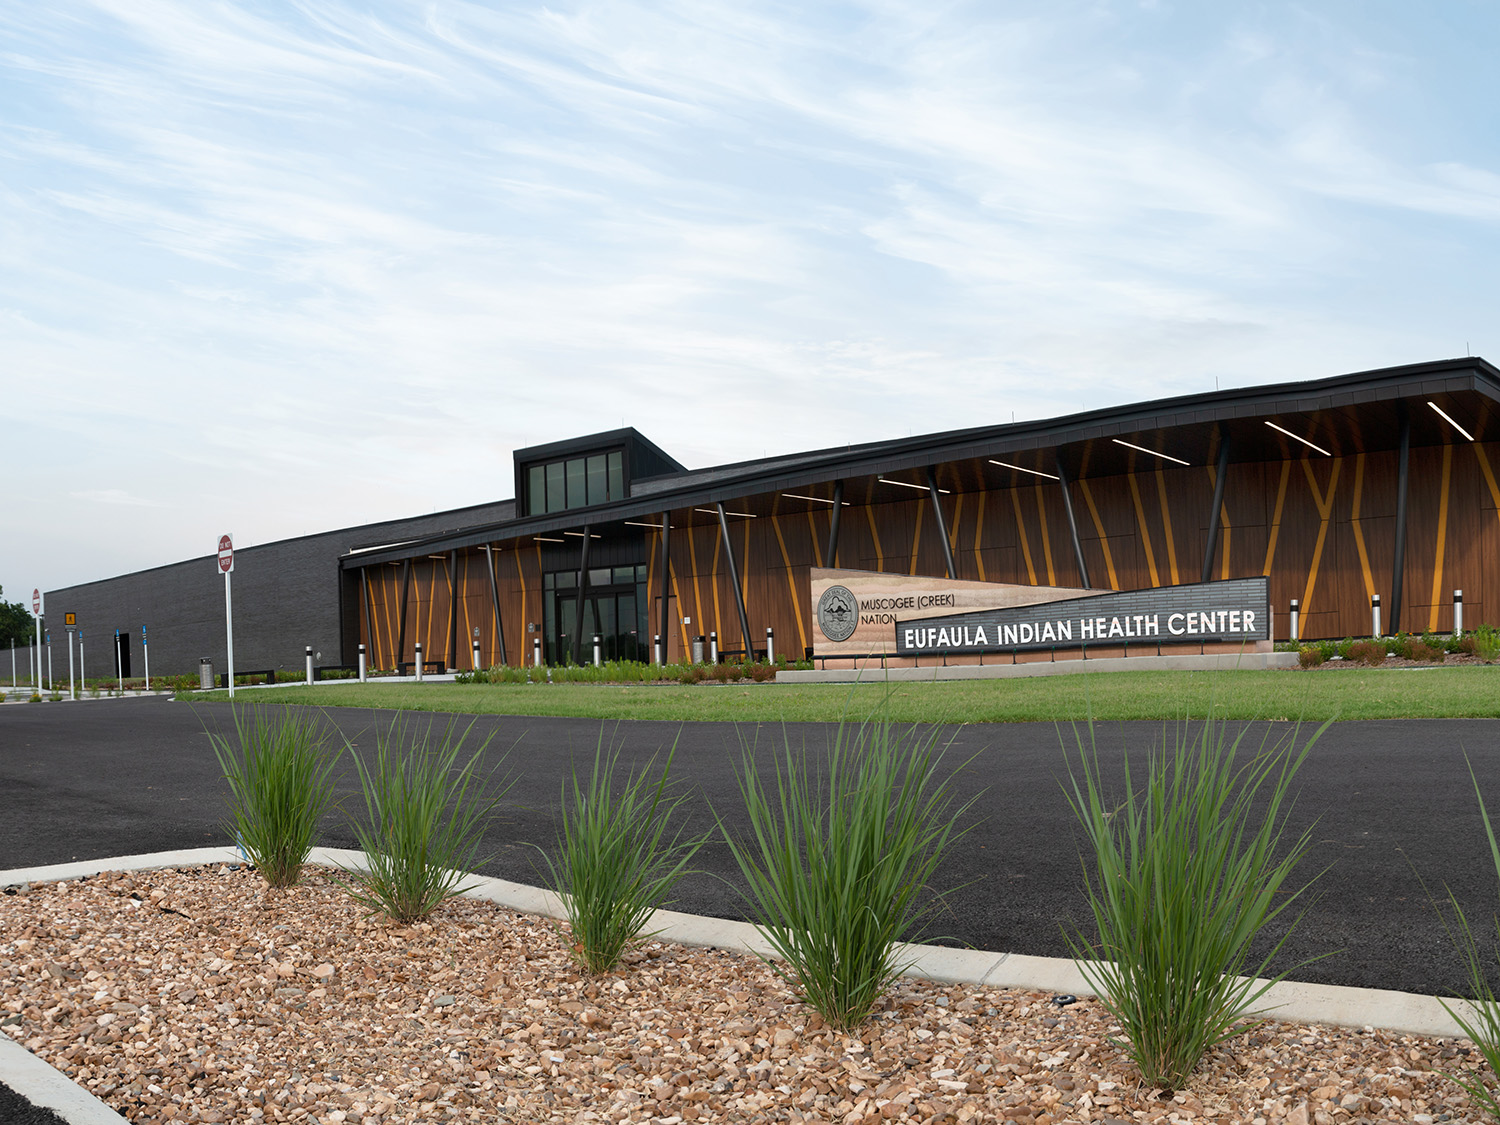 Muscogee (Creek) Nation's New Eufaula Indian Health Center Facility Opened its Doors Aug. 1